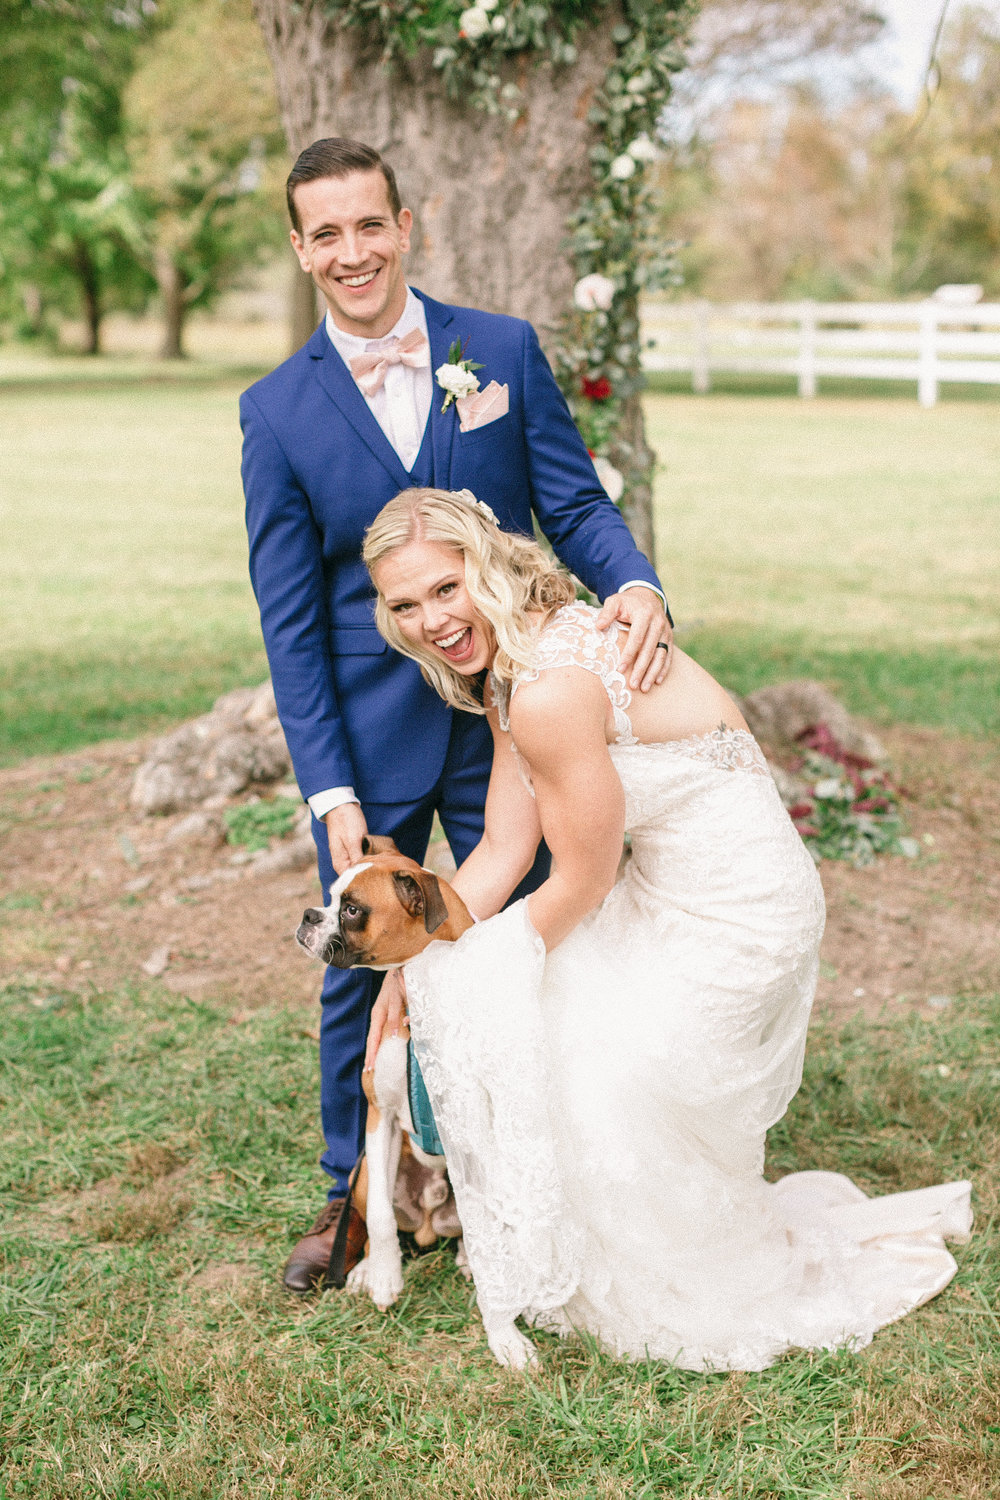 Puppies at weddings. DUH! Cassidy and Mike brought their pup, Colin Farrell, to their celebration. He pretty much stole the show anytime he was able to come out and play.  Photo: We Are The Mitchells